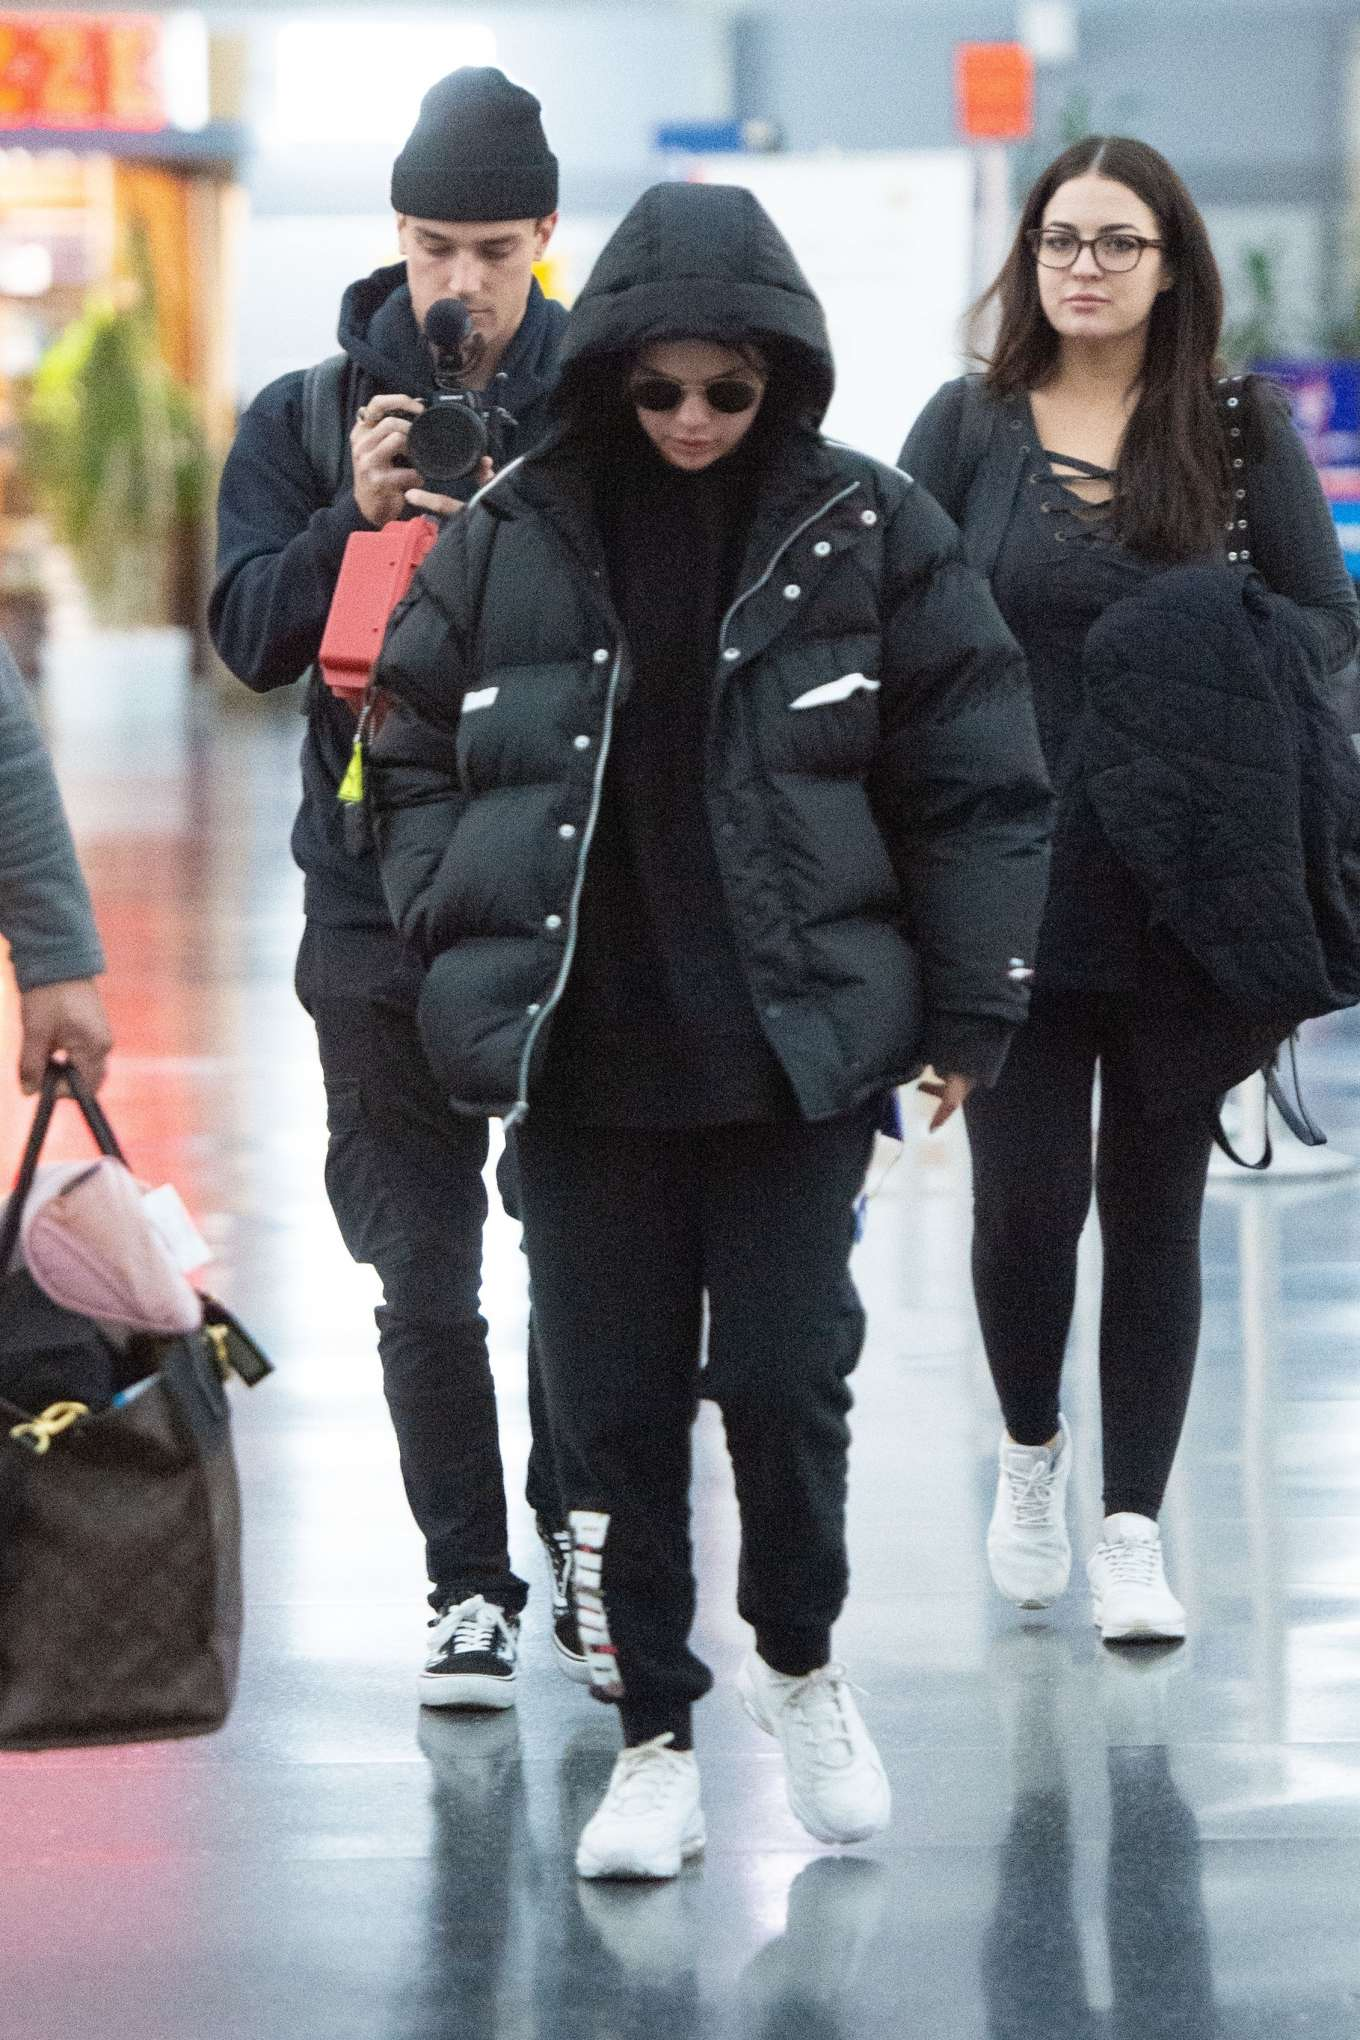 Selena Gomez, nylon, Puma  jacket, black  jacket, black hoodie, white Puma sneakers, hip length, extra long sleeves, front zip, oversized, black sunglasses, concealed button